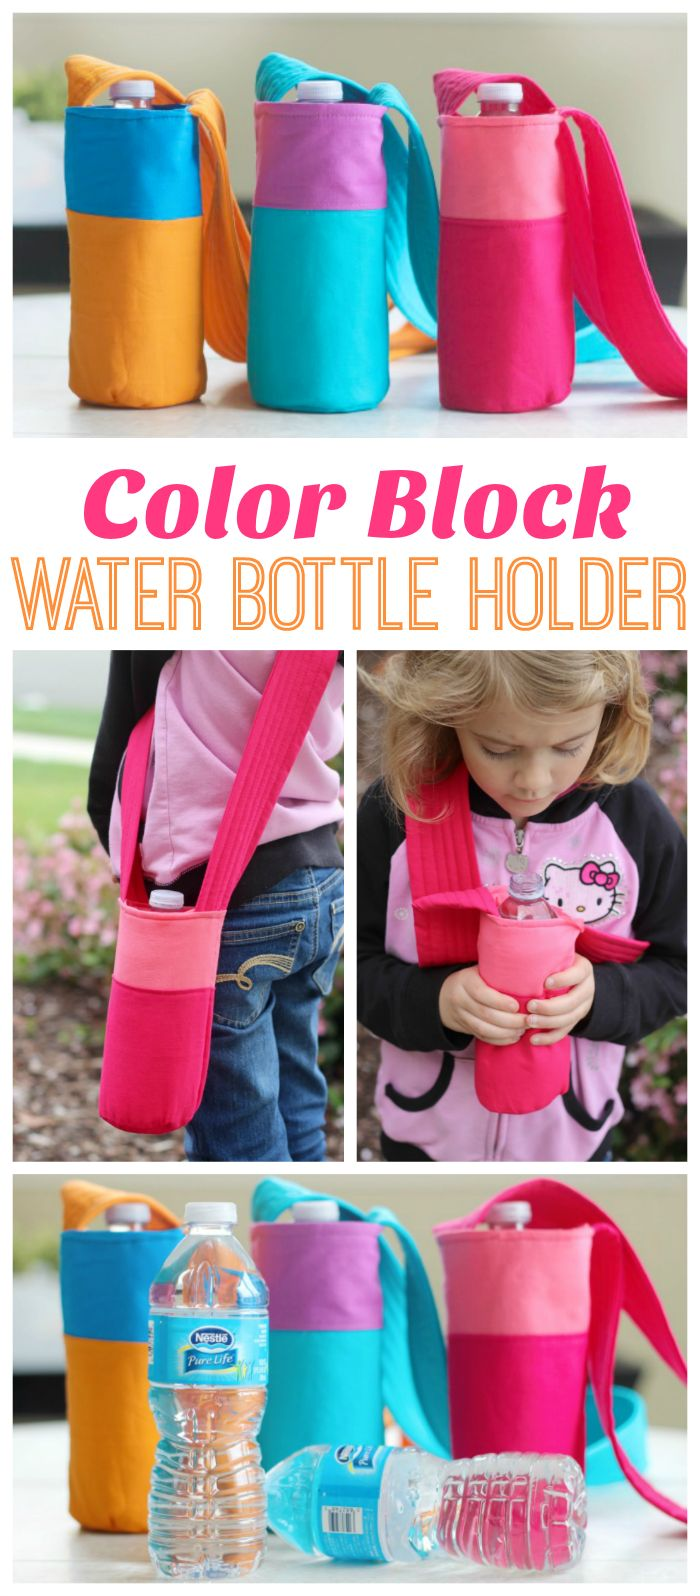 Color Block Water Bottle Holder Tutorial